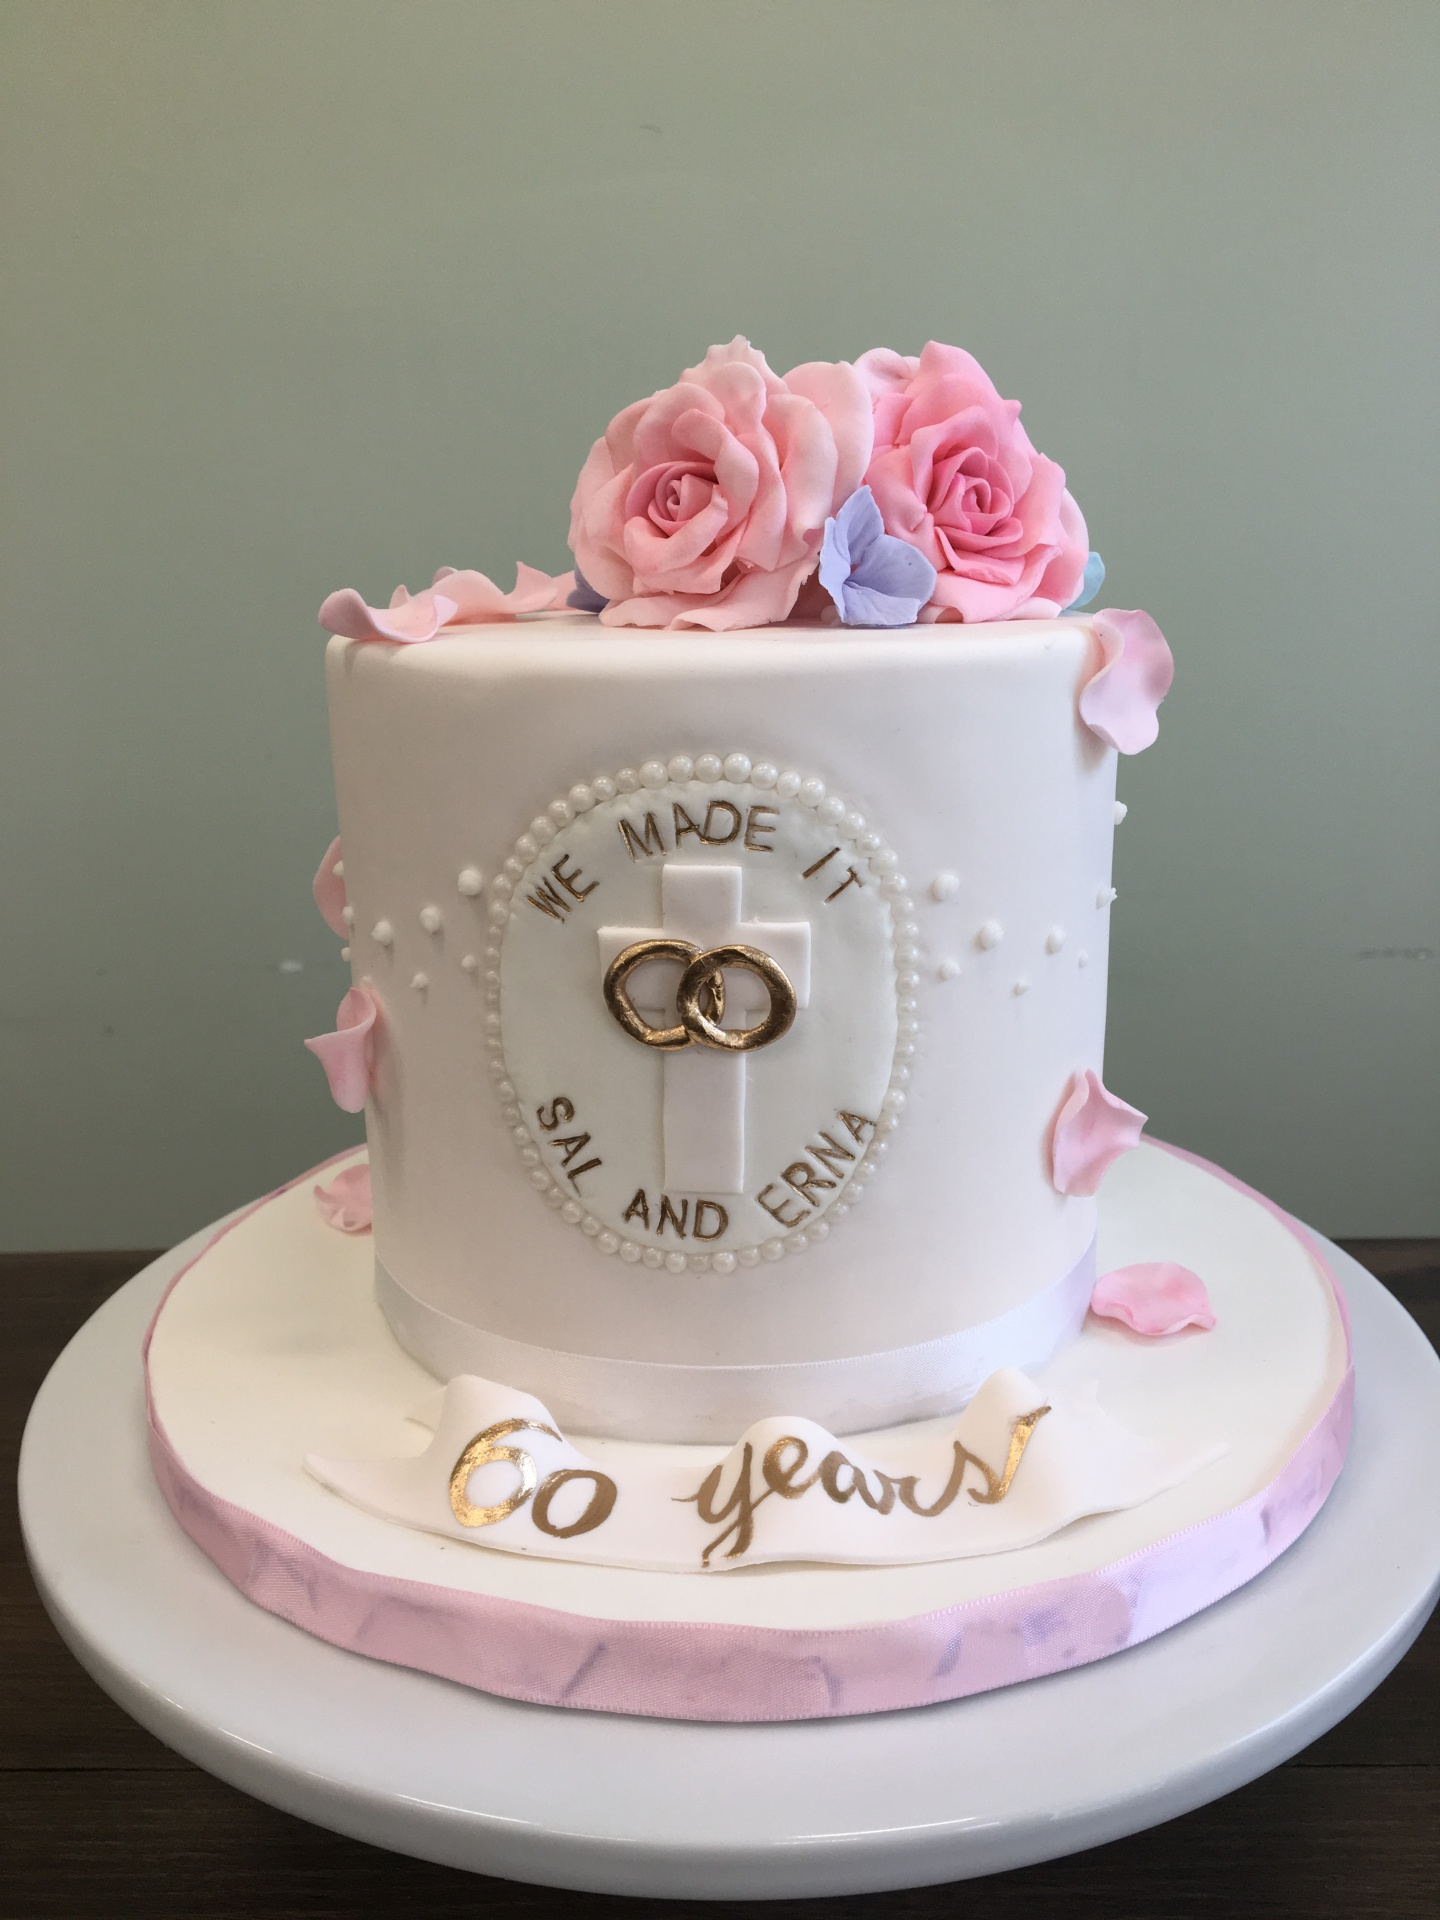 Custom Cakes NJ Wedding Anniversary Cake with Sugar Roses